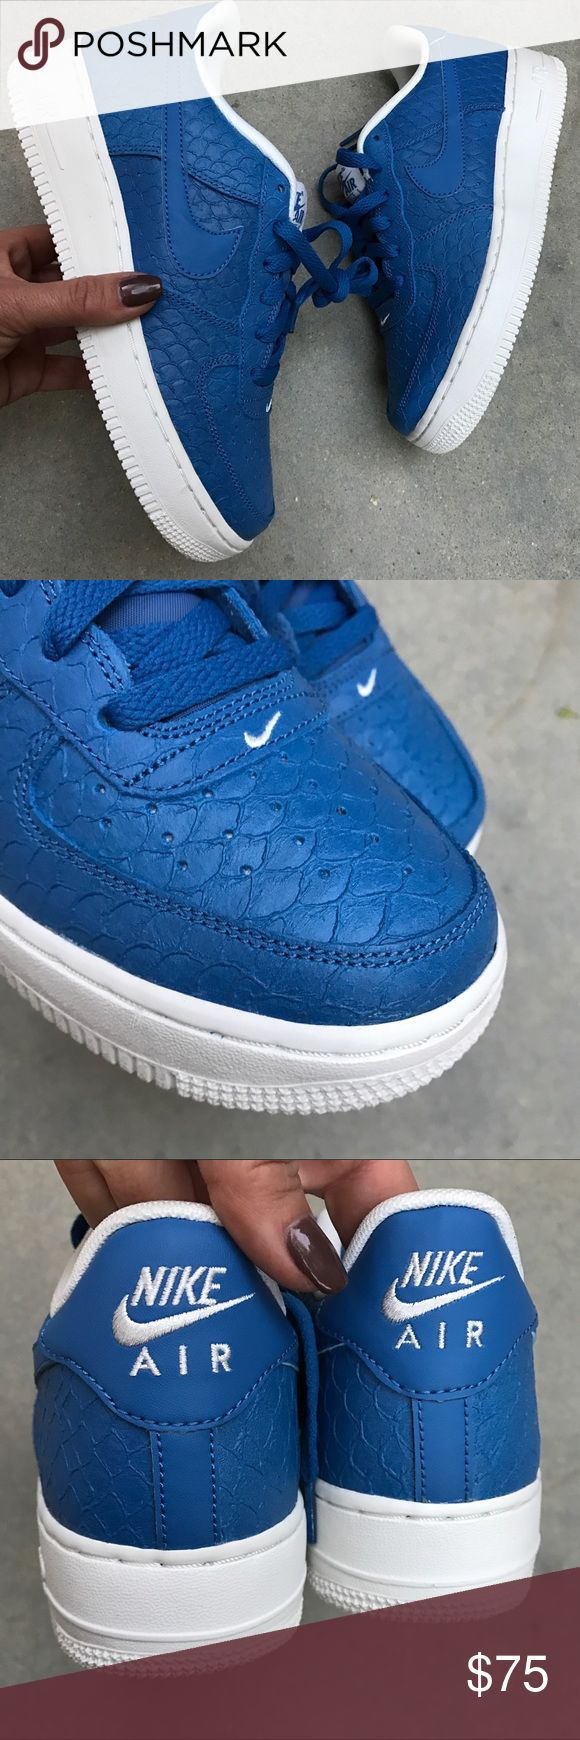 NEW | NIKE AIR FORCE ONE SZ 6 youth UNISEX New never worn 💙 NIKE AIR FORCE ONE PREMIUM  Ships same or next day, NO ORIGINAL BOX, smoke free home.  PRICE IS FIRM. 100% authentic purchased directly from NIKE 💙 Nike Shoes Sneakers